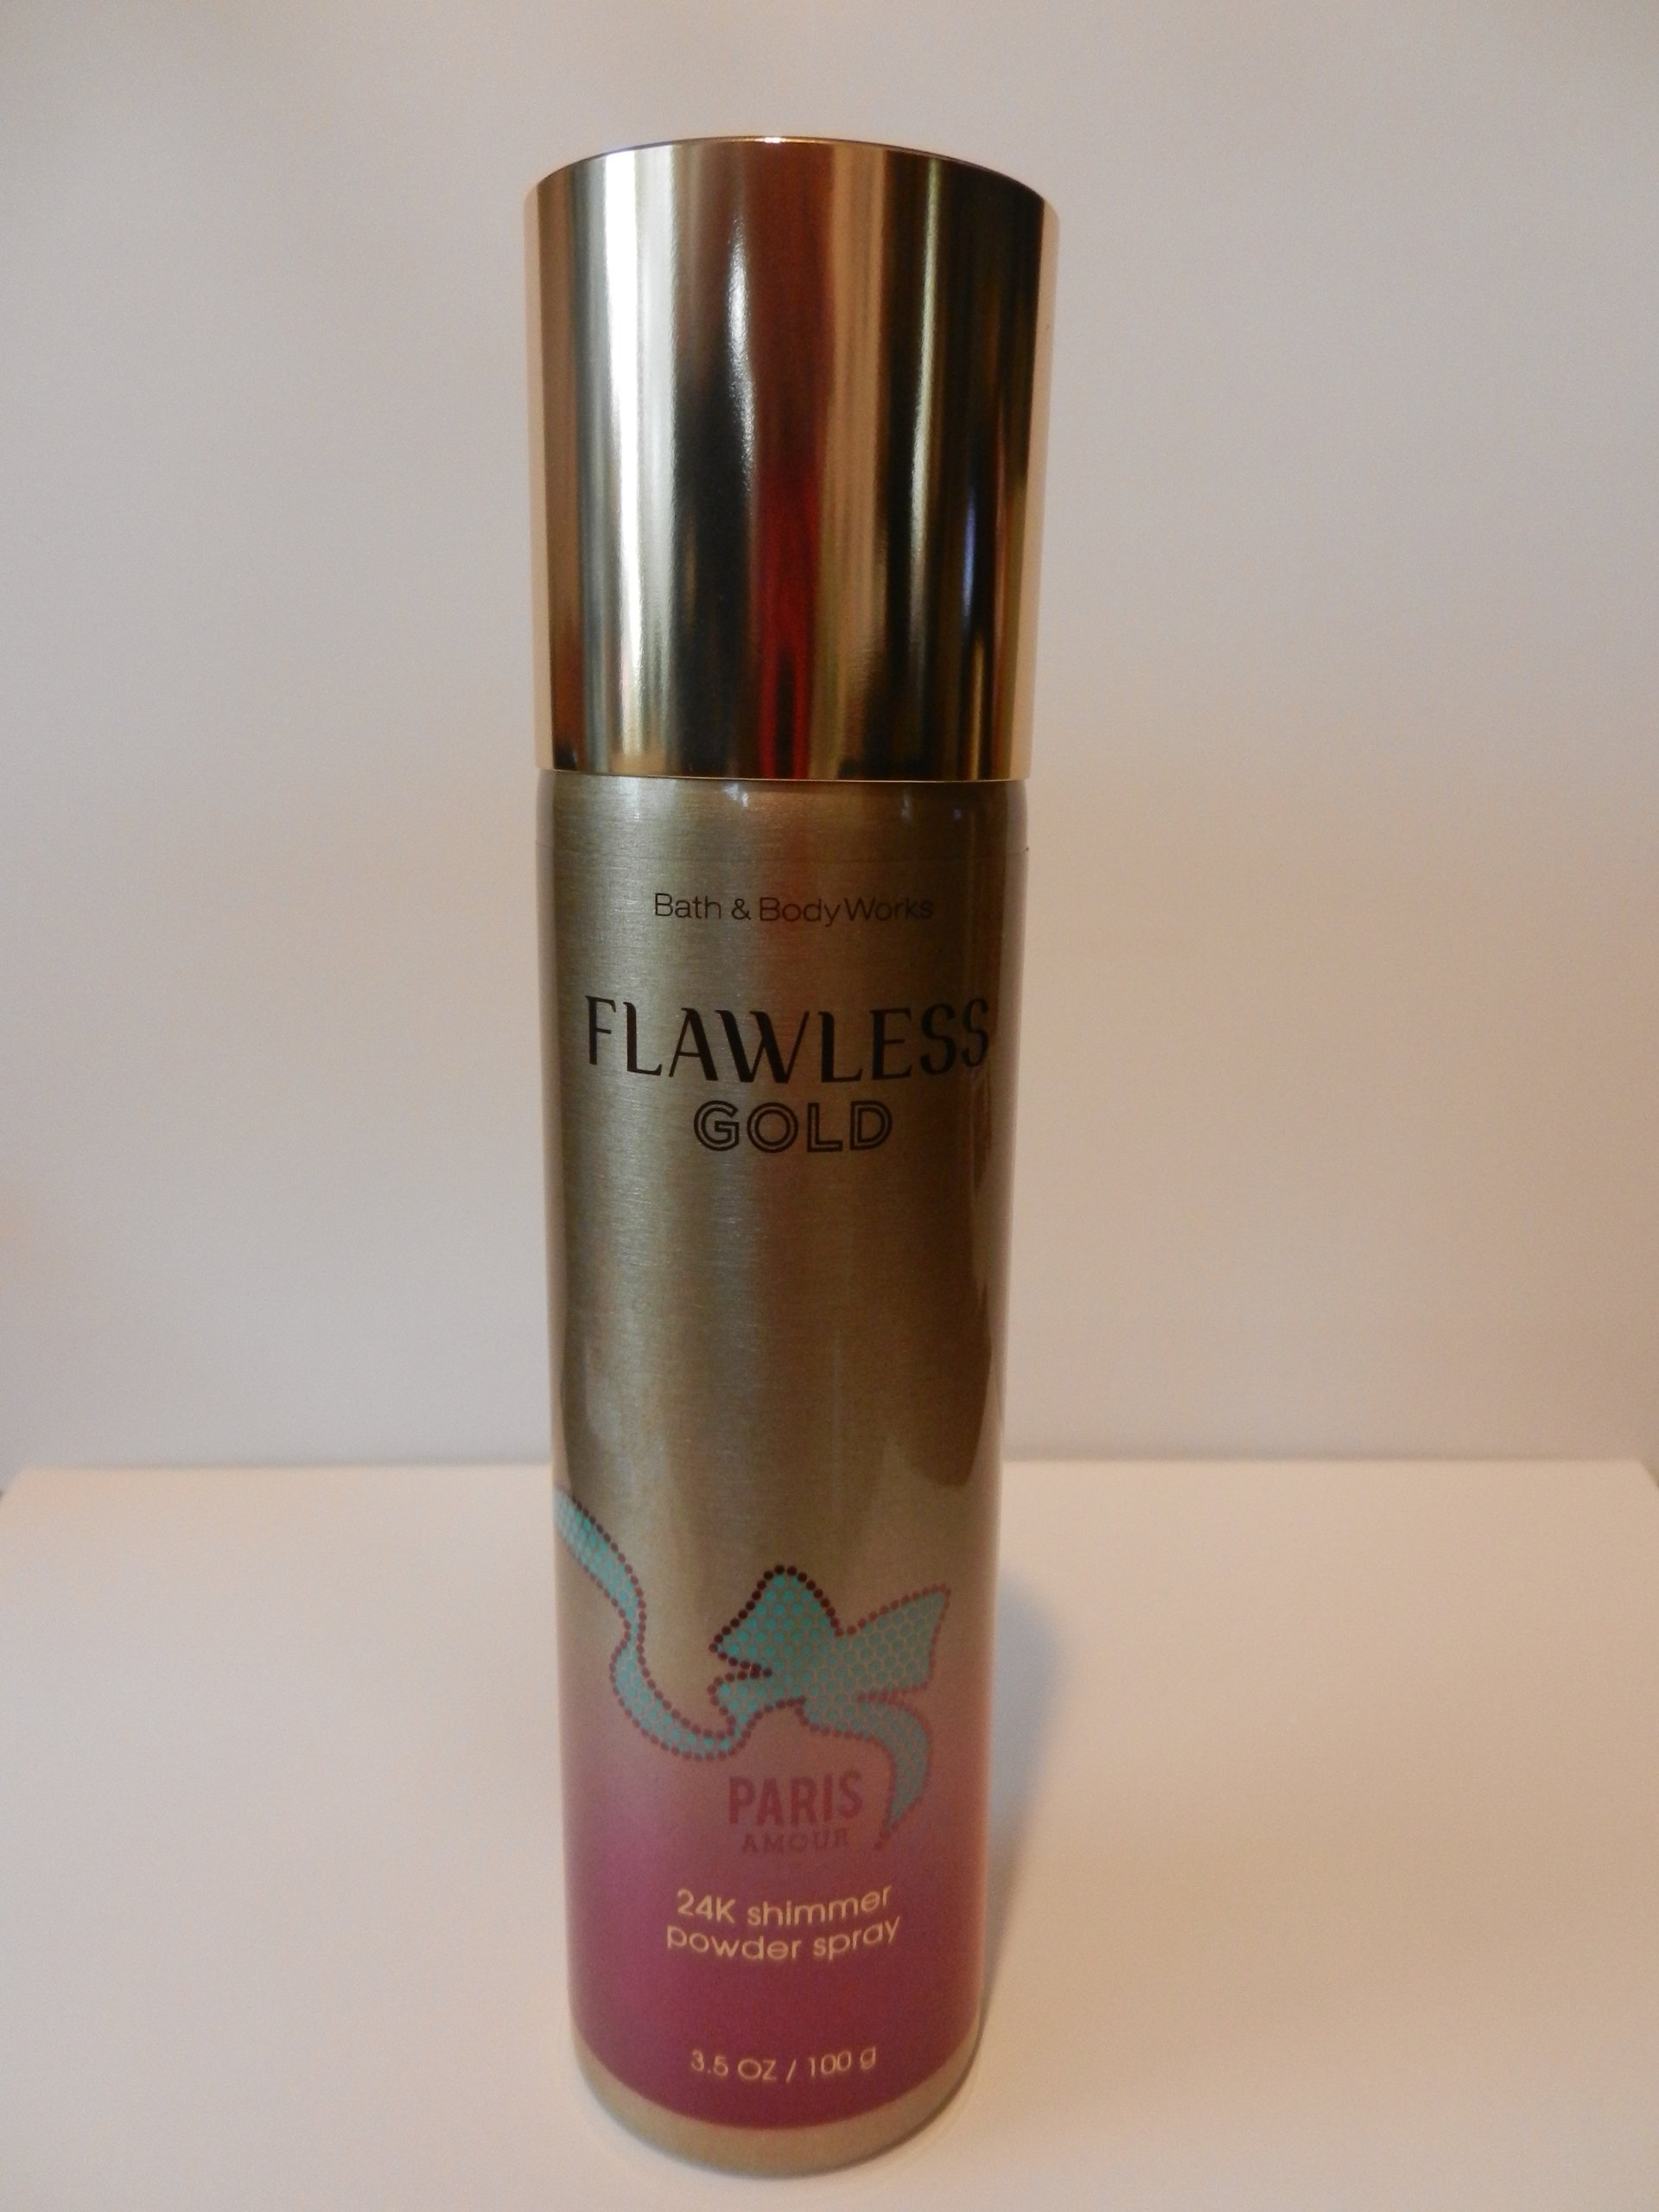 Bath and Body Works New Flawless Gold Paris Amour 24K Shimmer Powder Spray